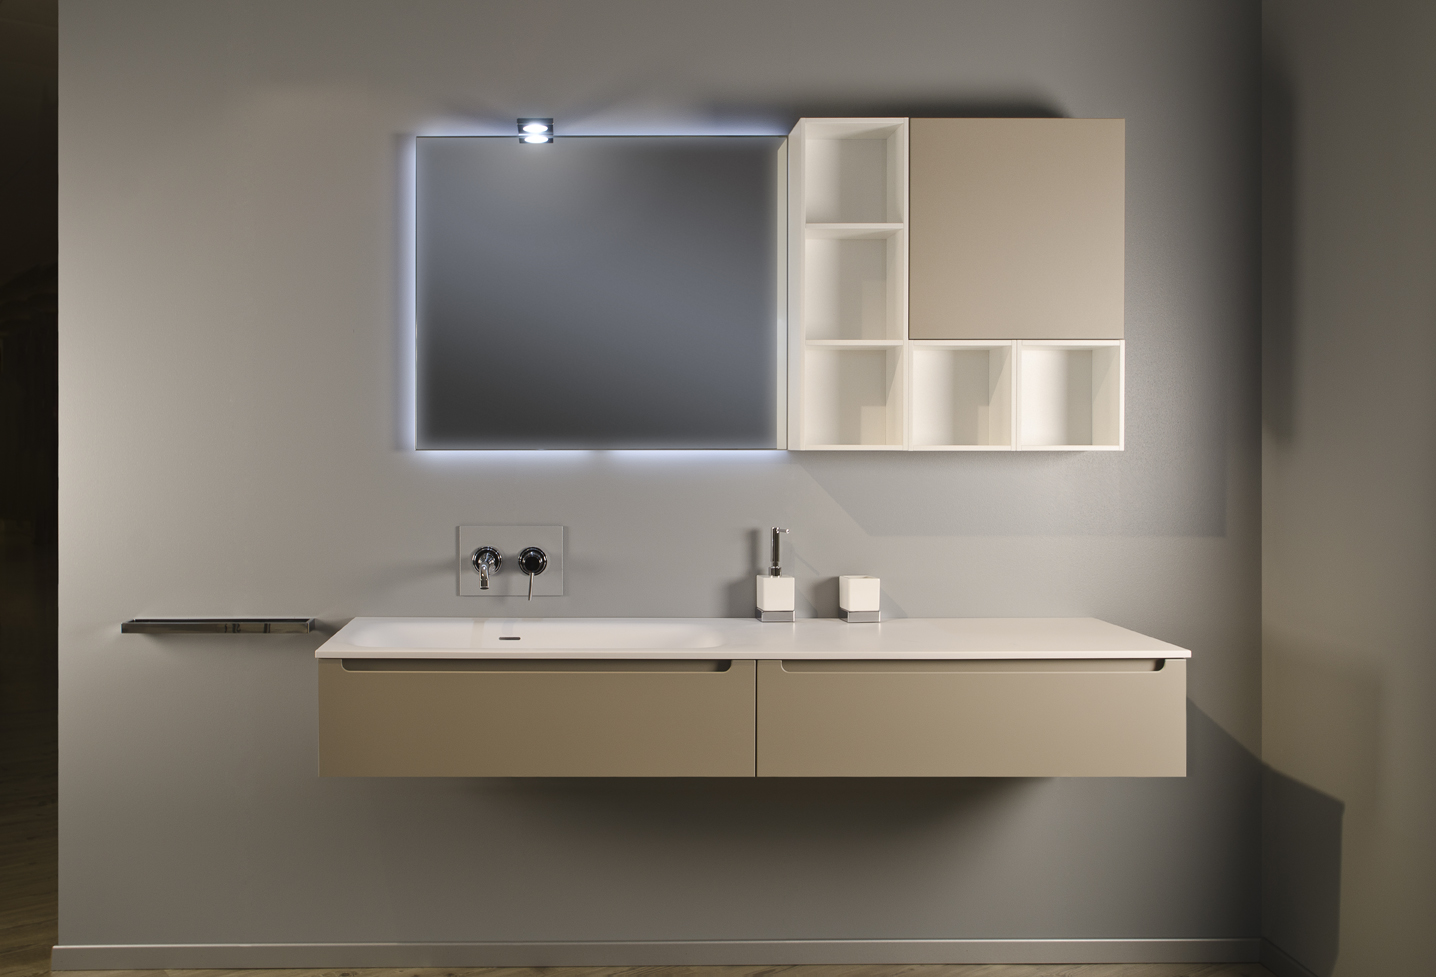 Awesome Arredo Bagno Scavolini Ideas - Amazing House Design ...